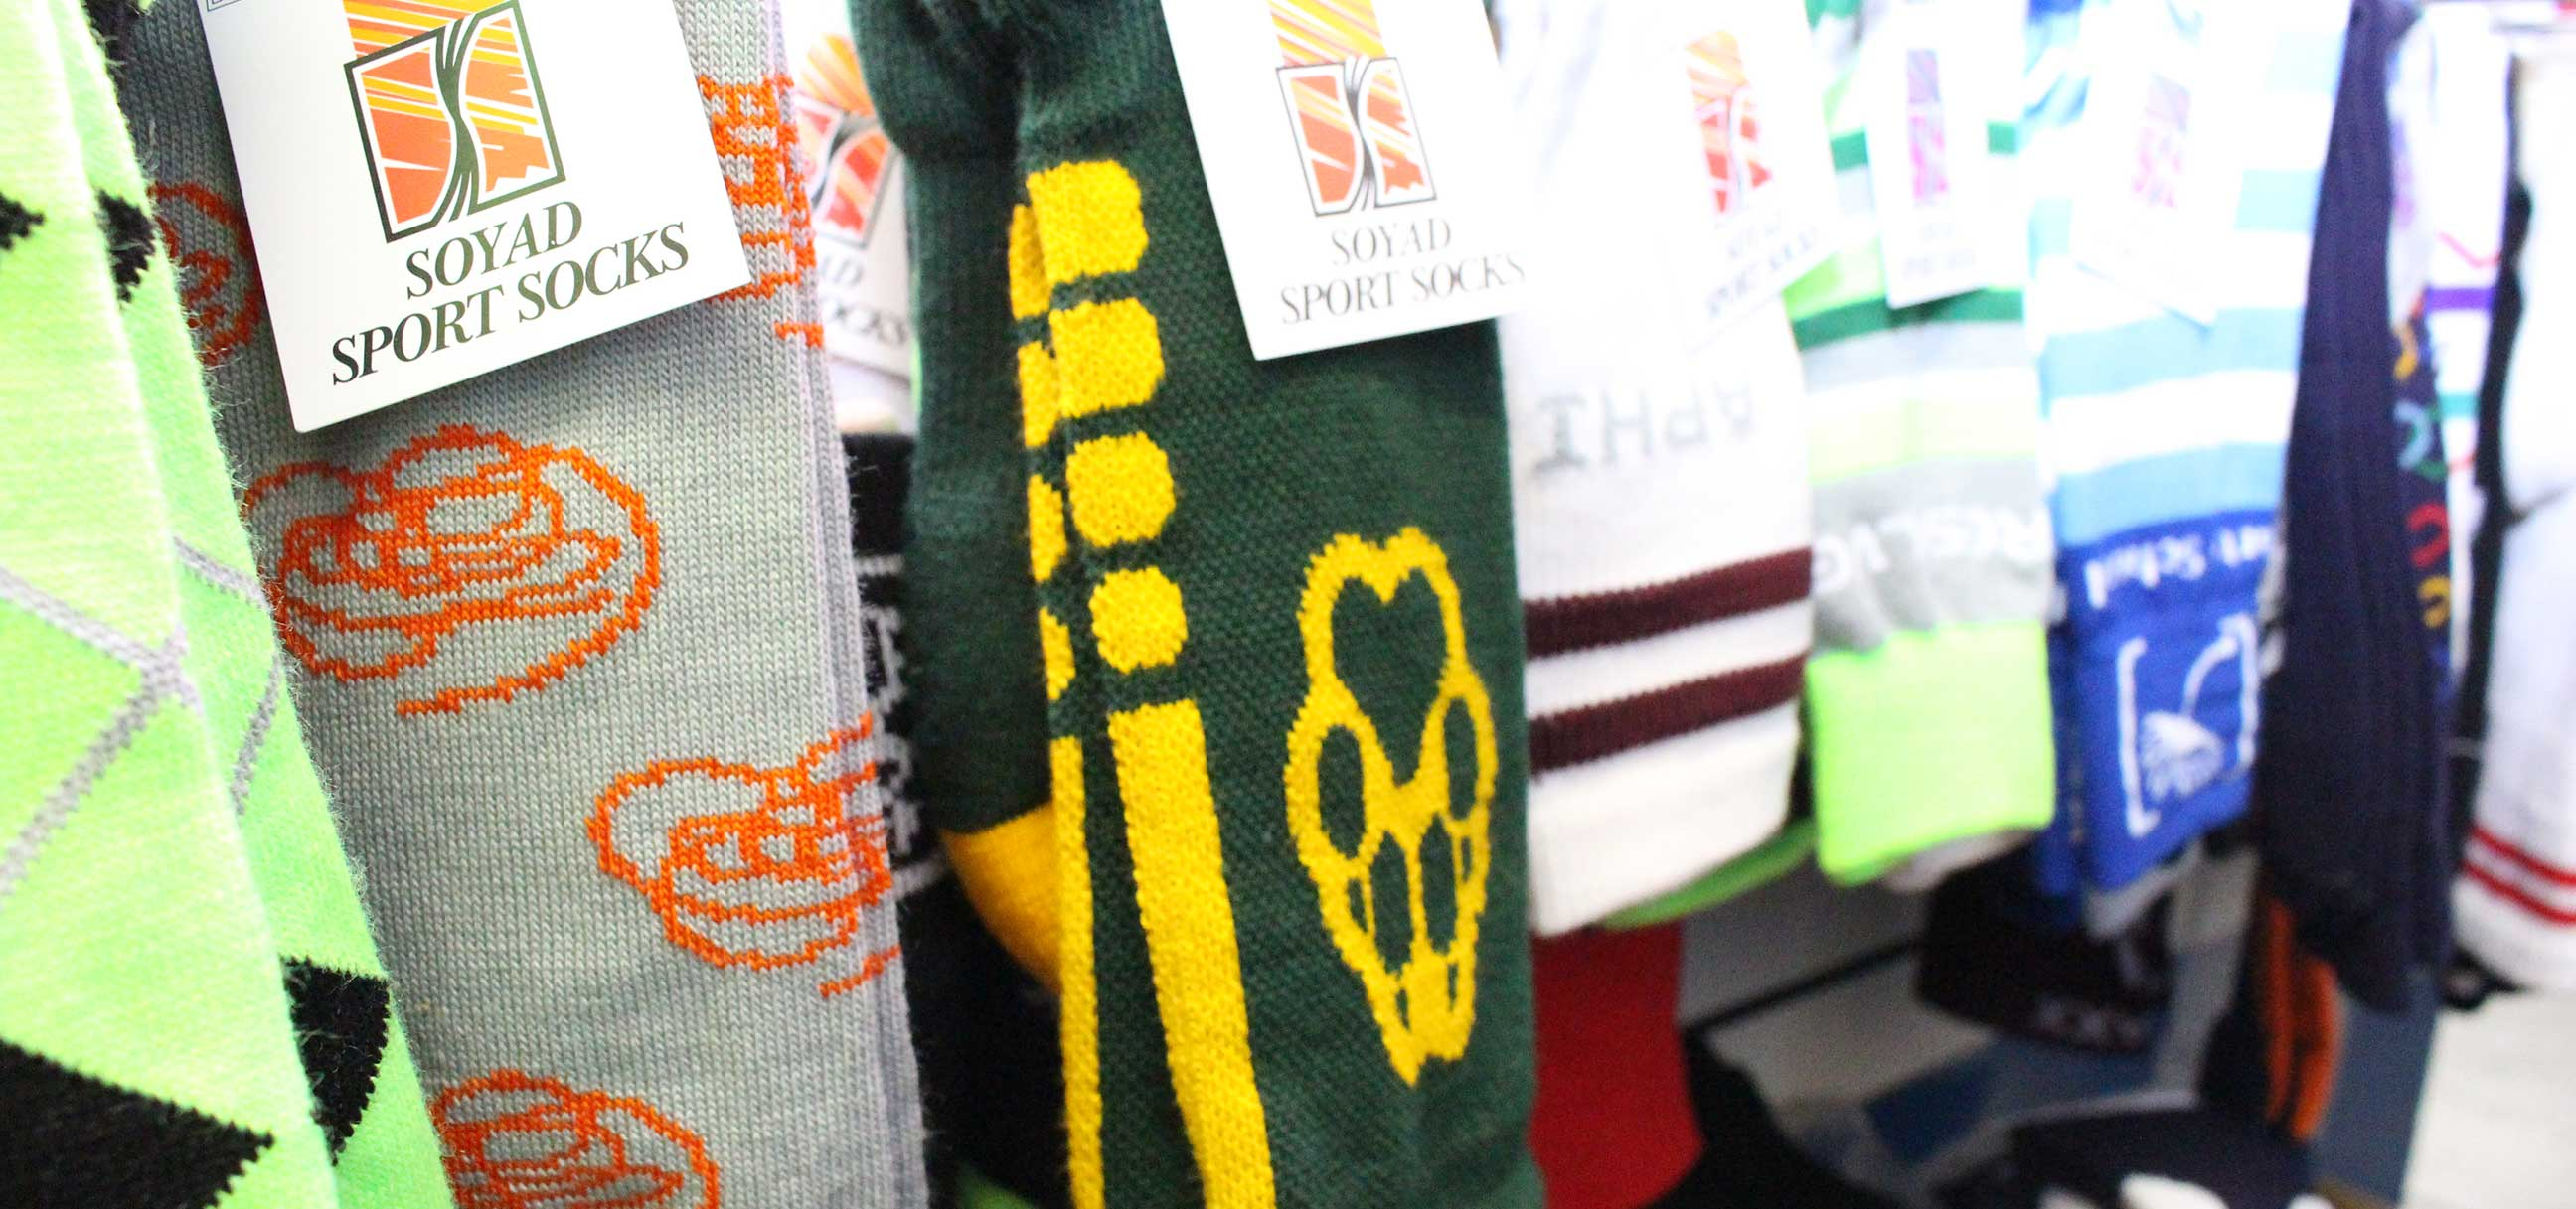 Custom sports socks for<br>all your athletic teams and events.